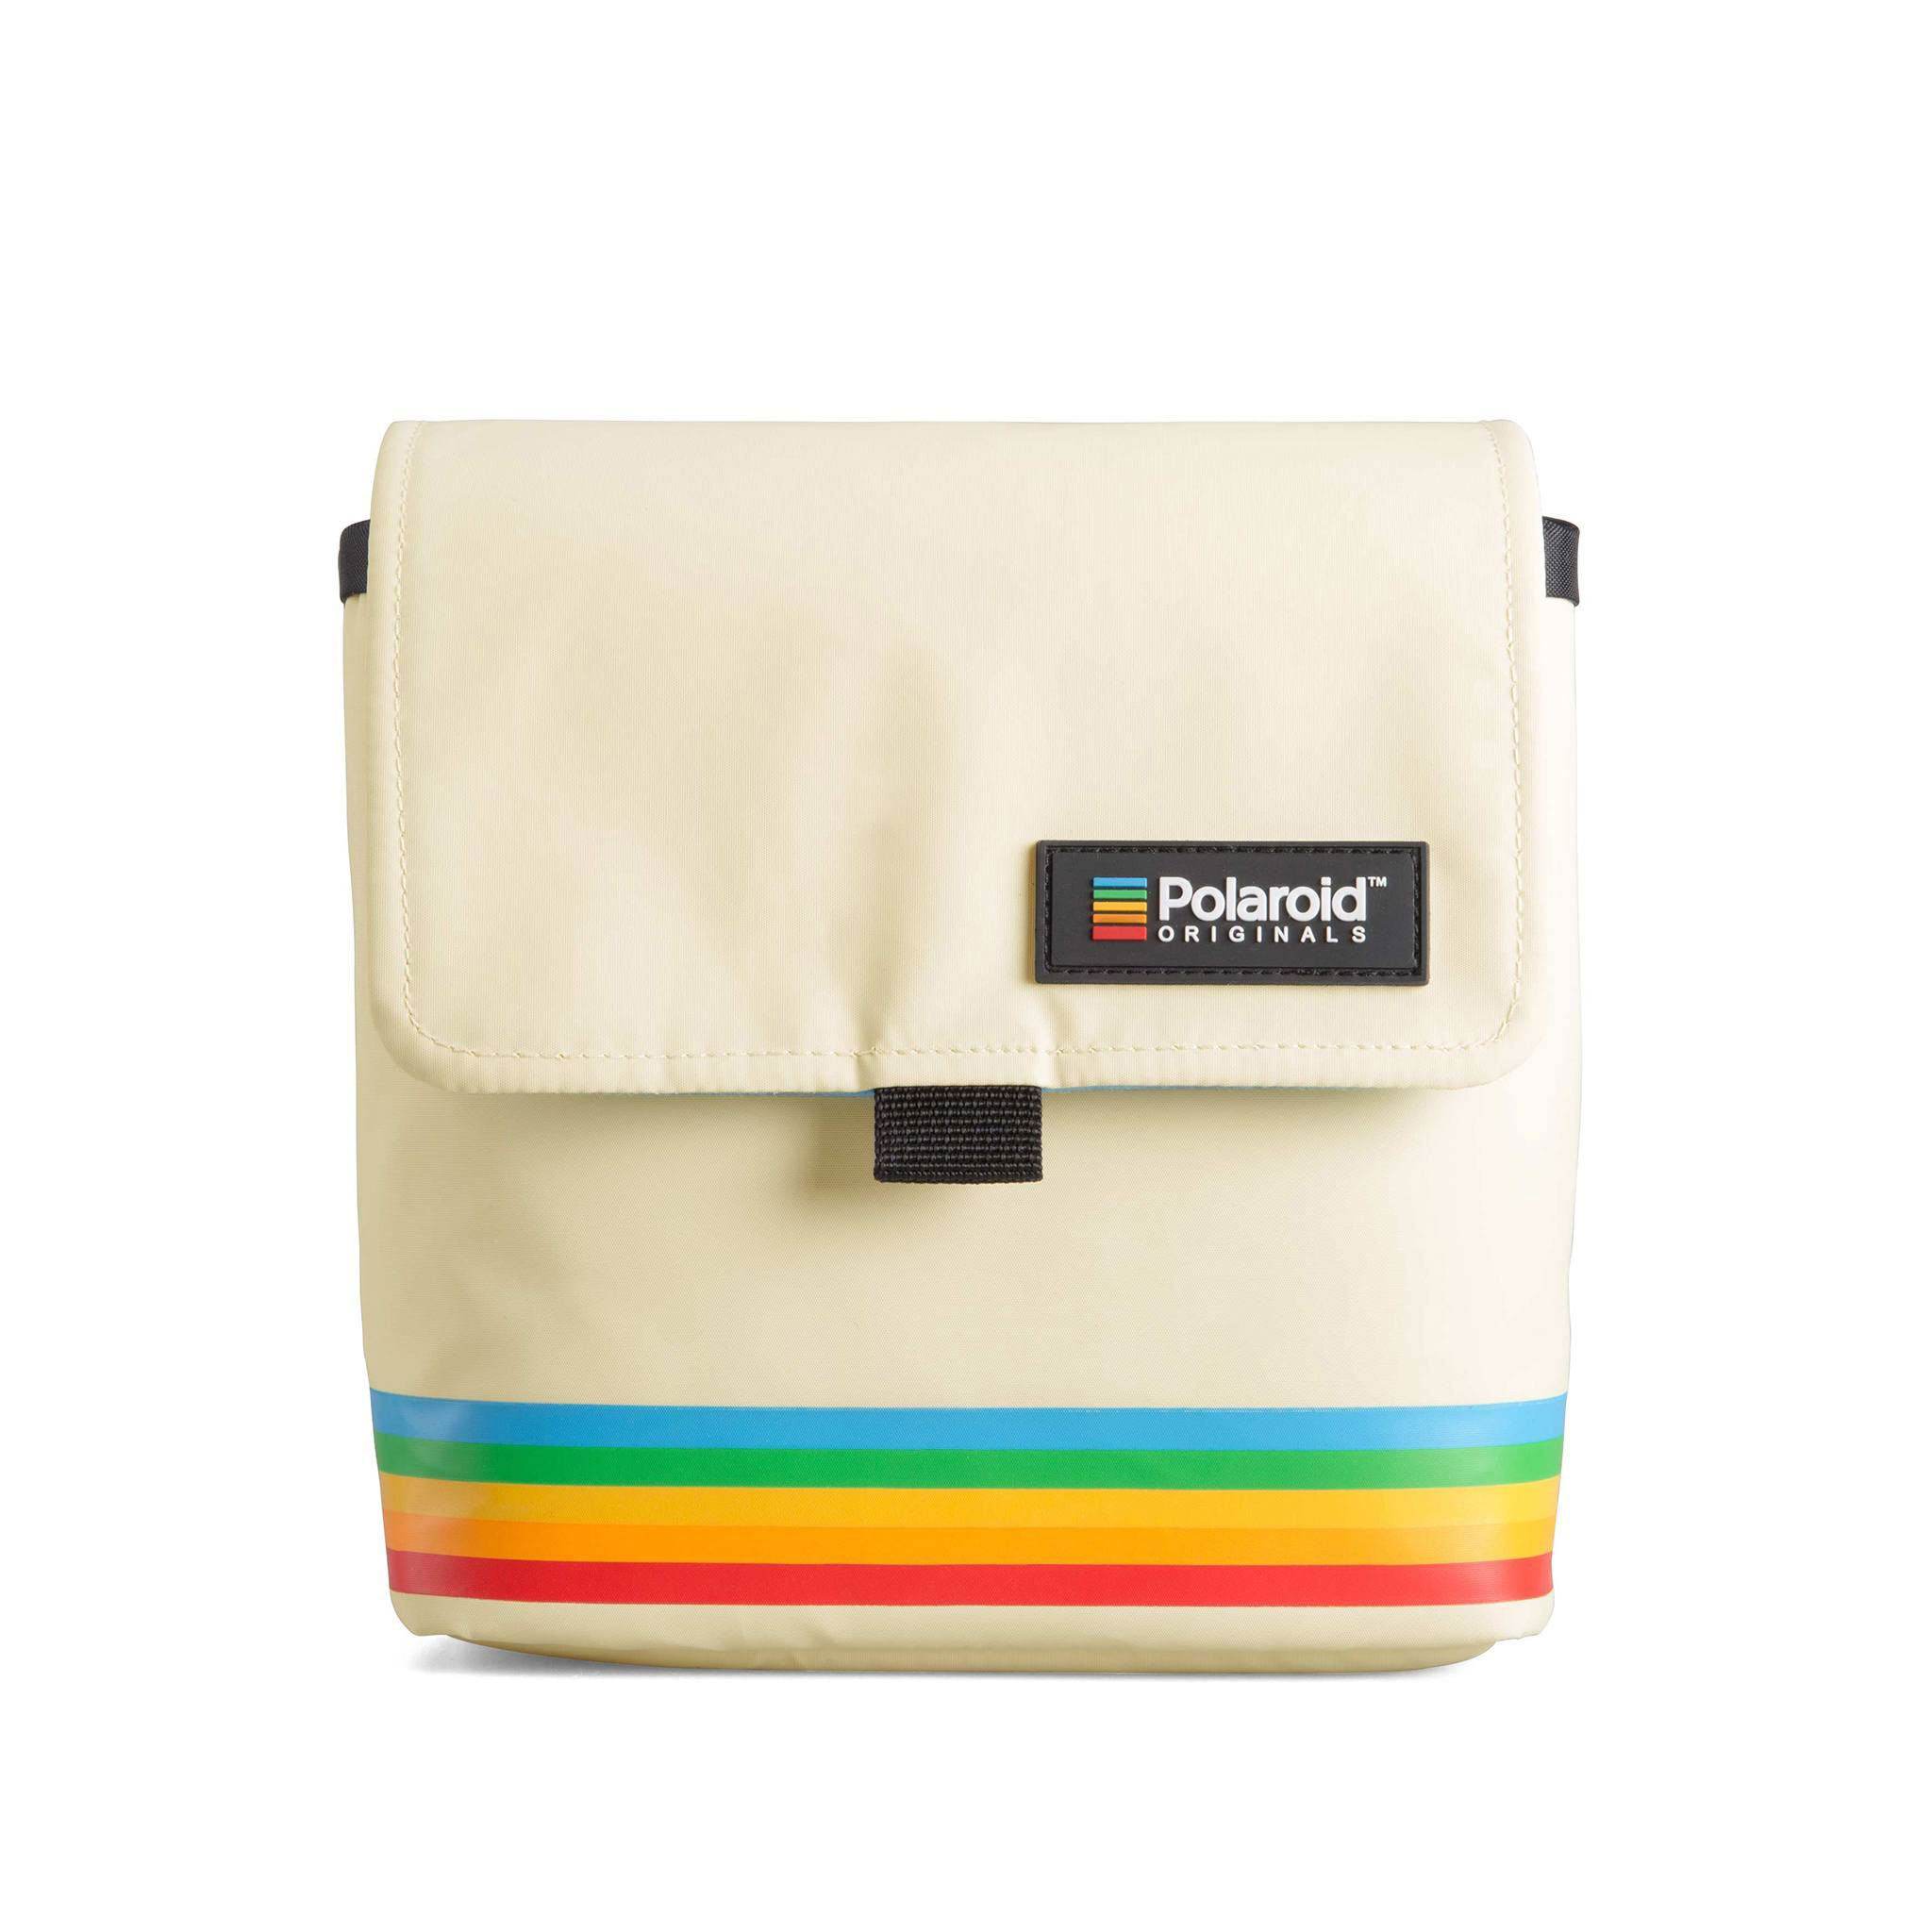 Polaroid Originals Box Camera Bag, White (4757)